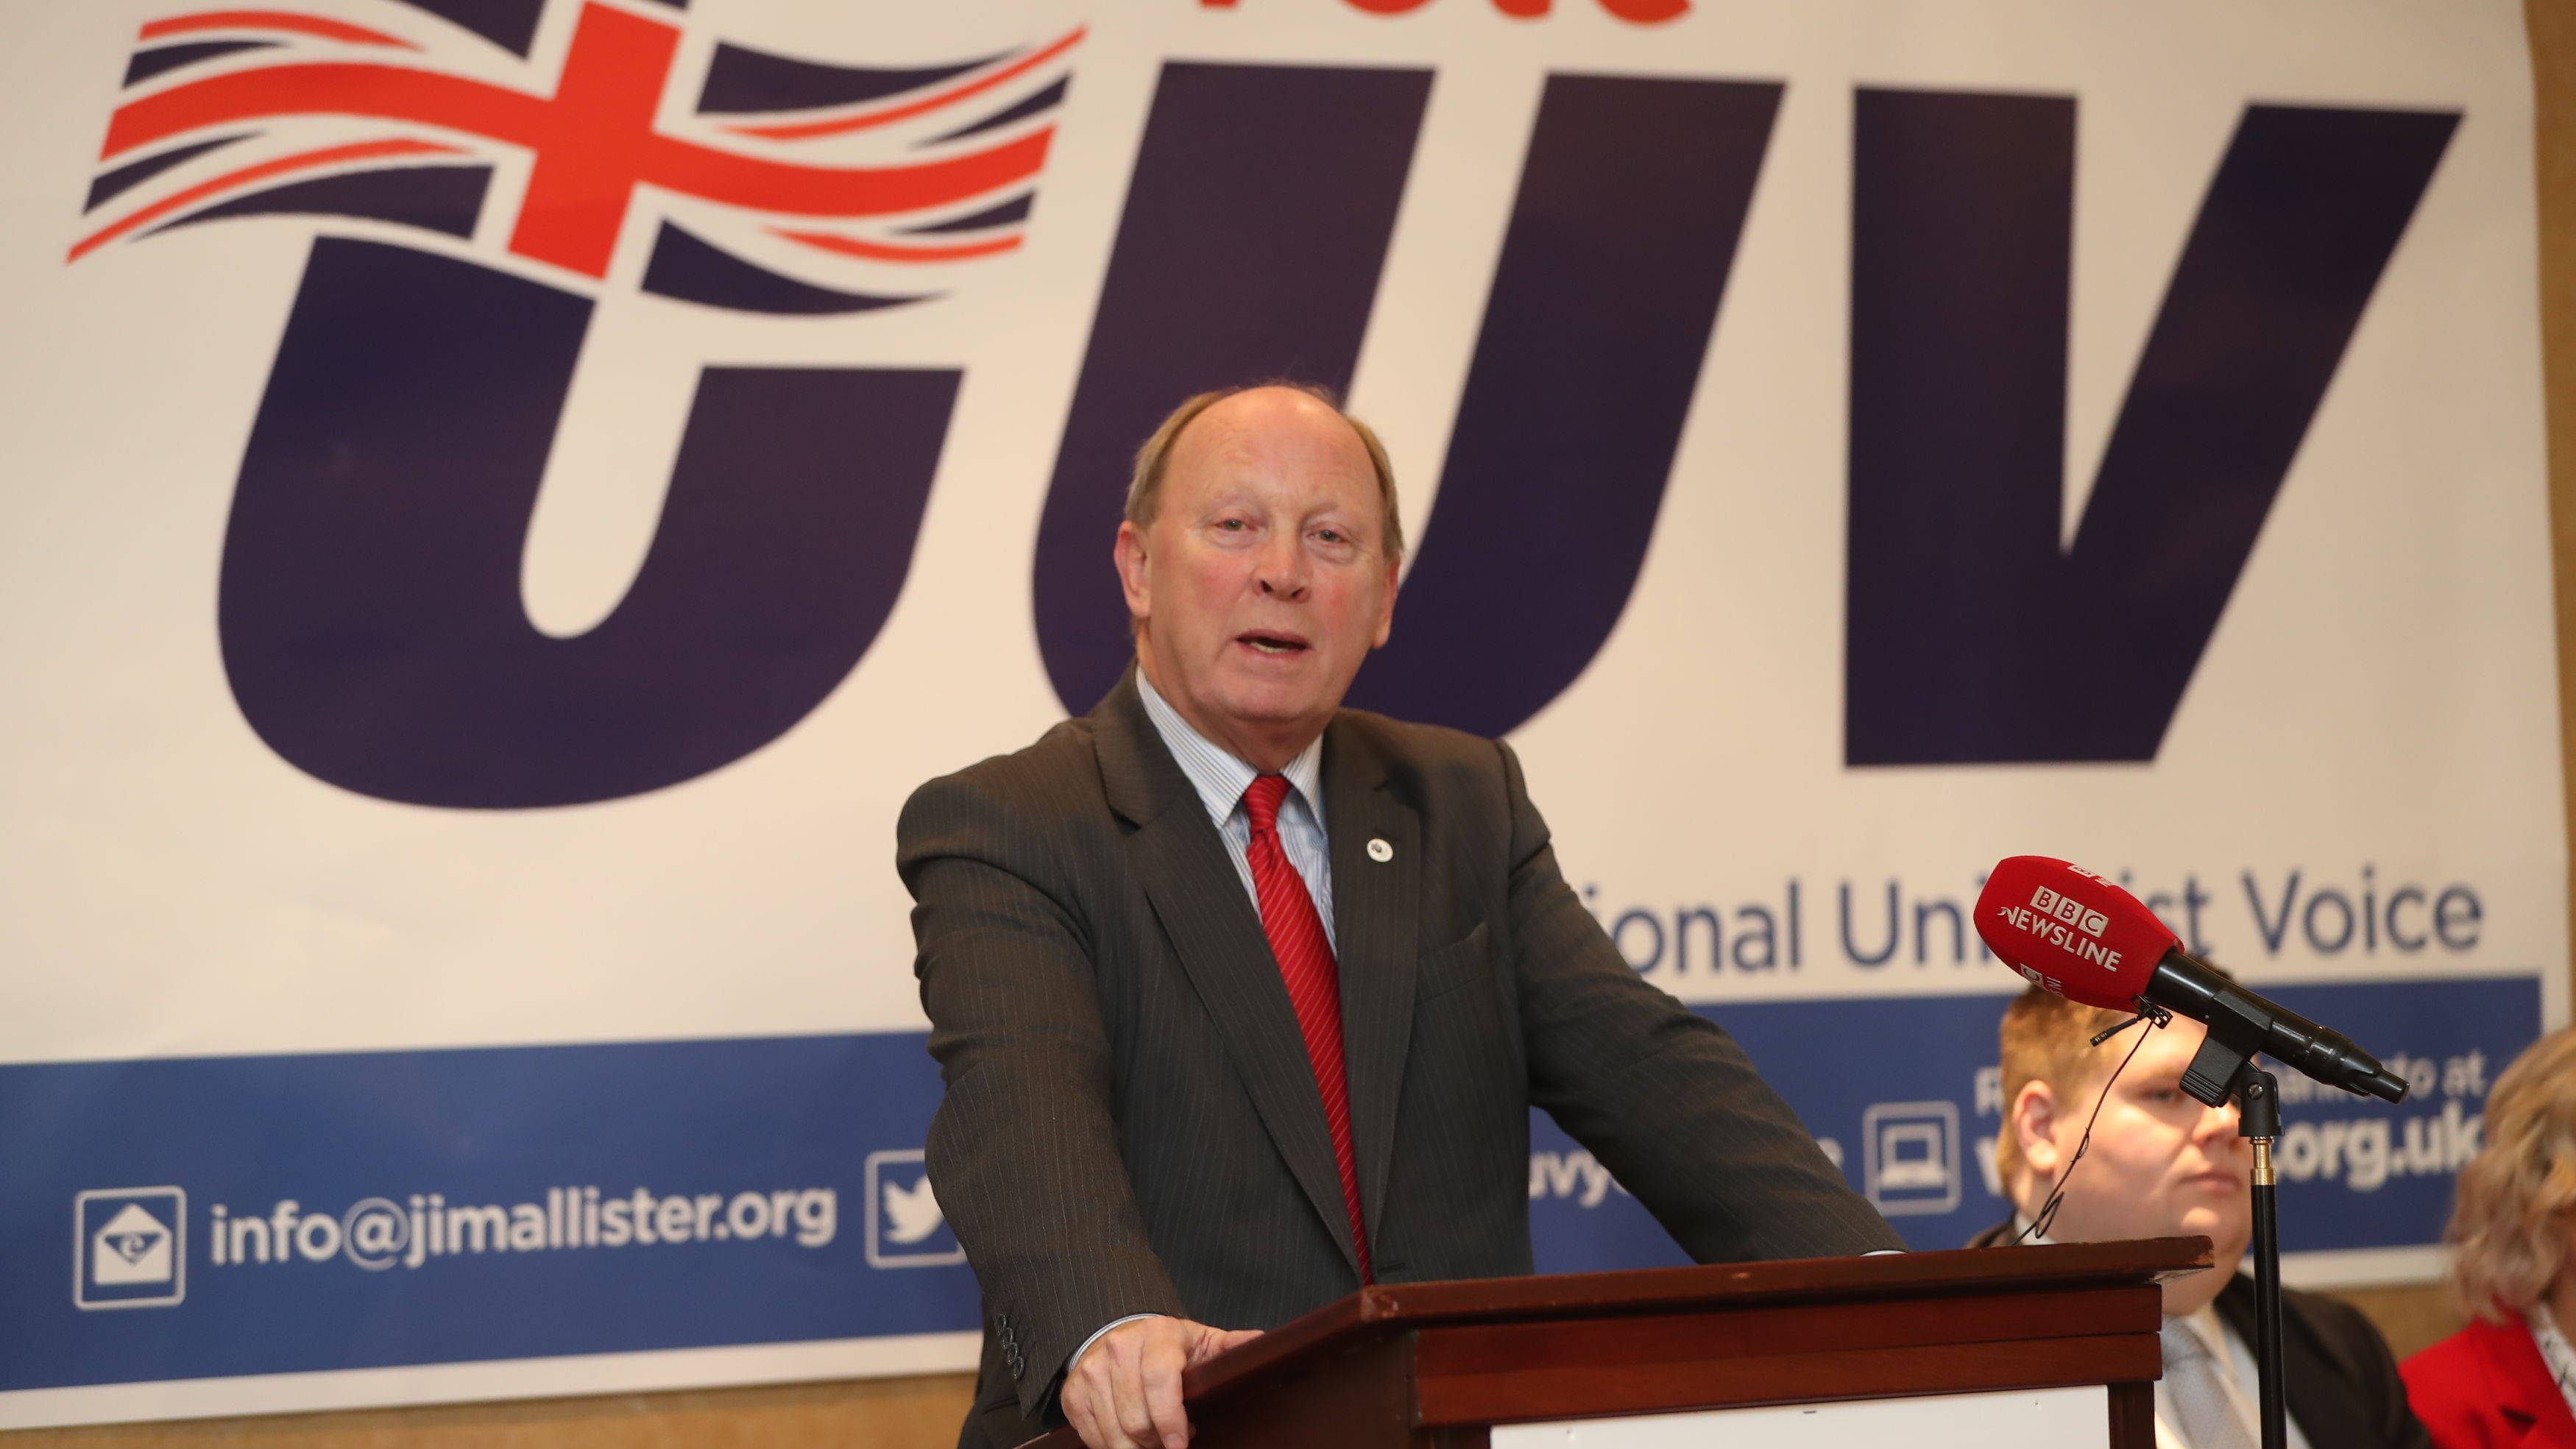 """""""It's Always Been The Ambition Of EU and Dublin To Break Up UK"""", Says Jim Allister"""